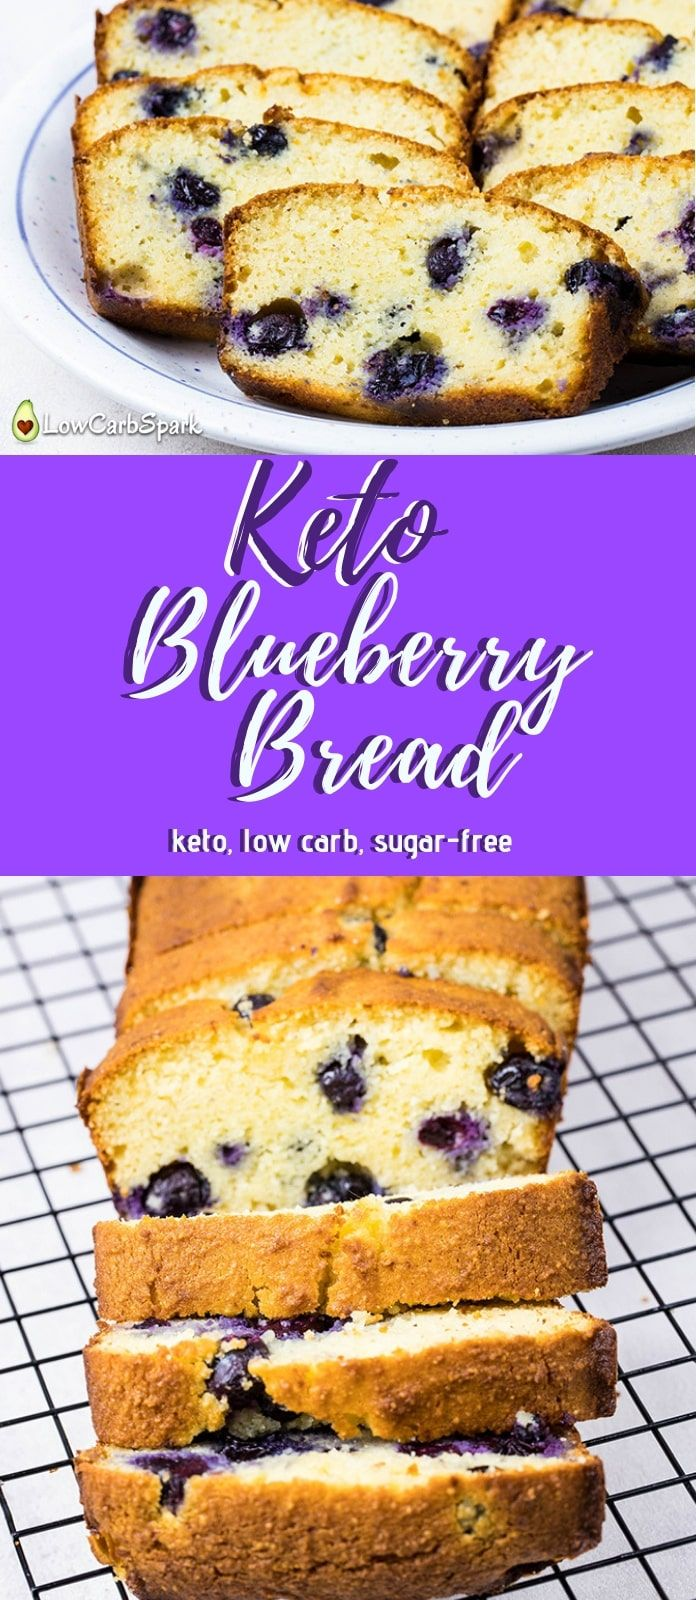 Easy Keto Blueberry Bread Low Carb Recipe Blueberry Bread